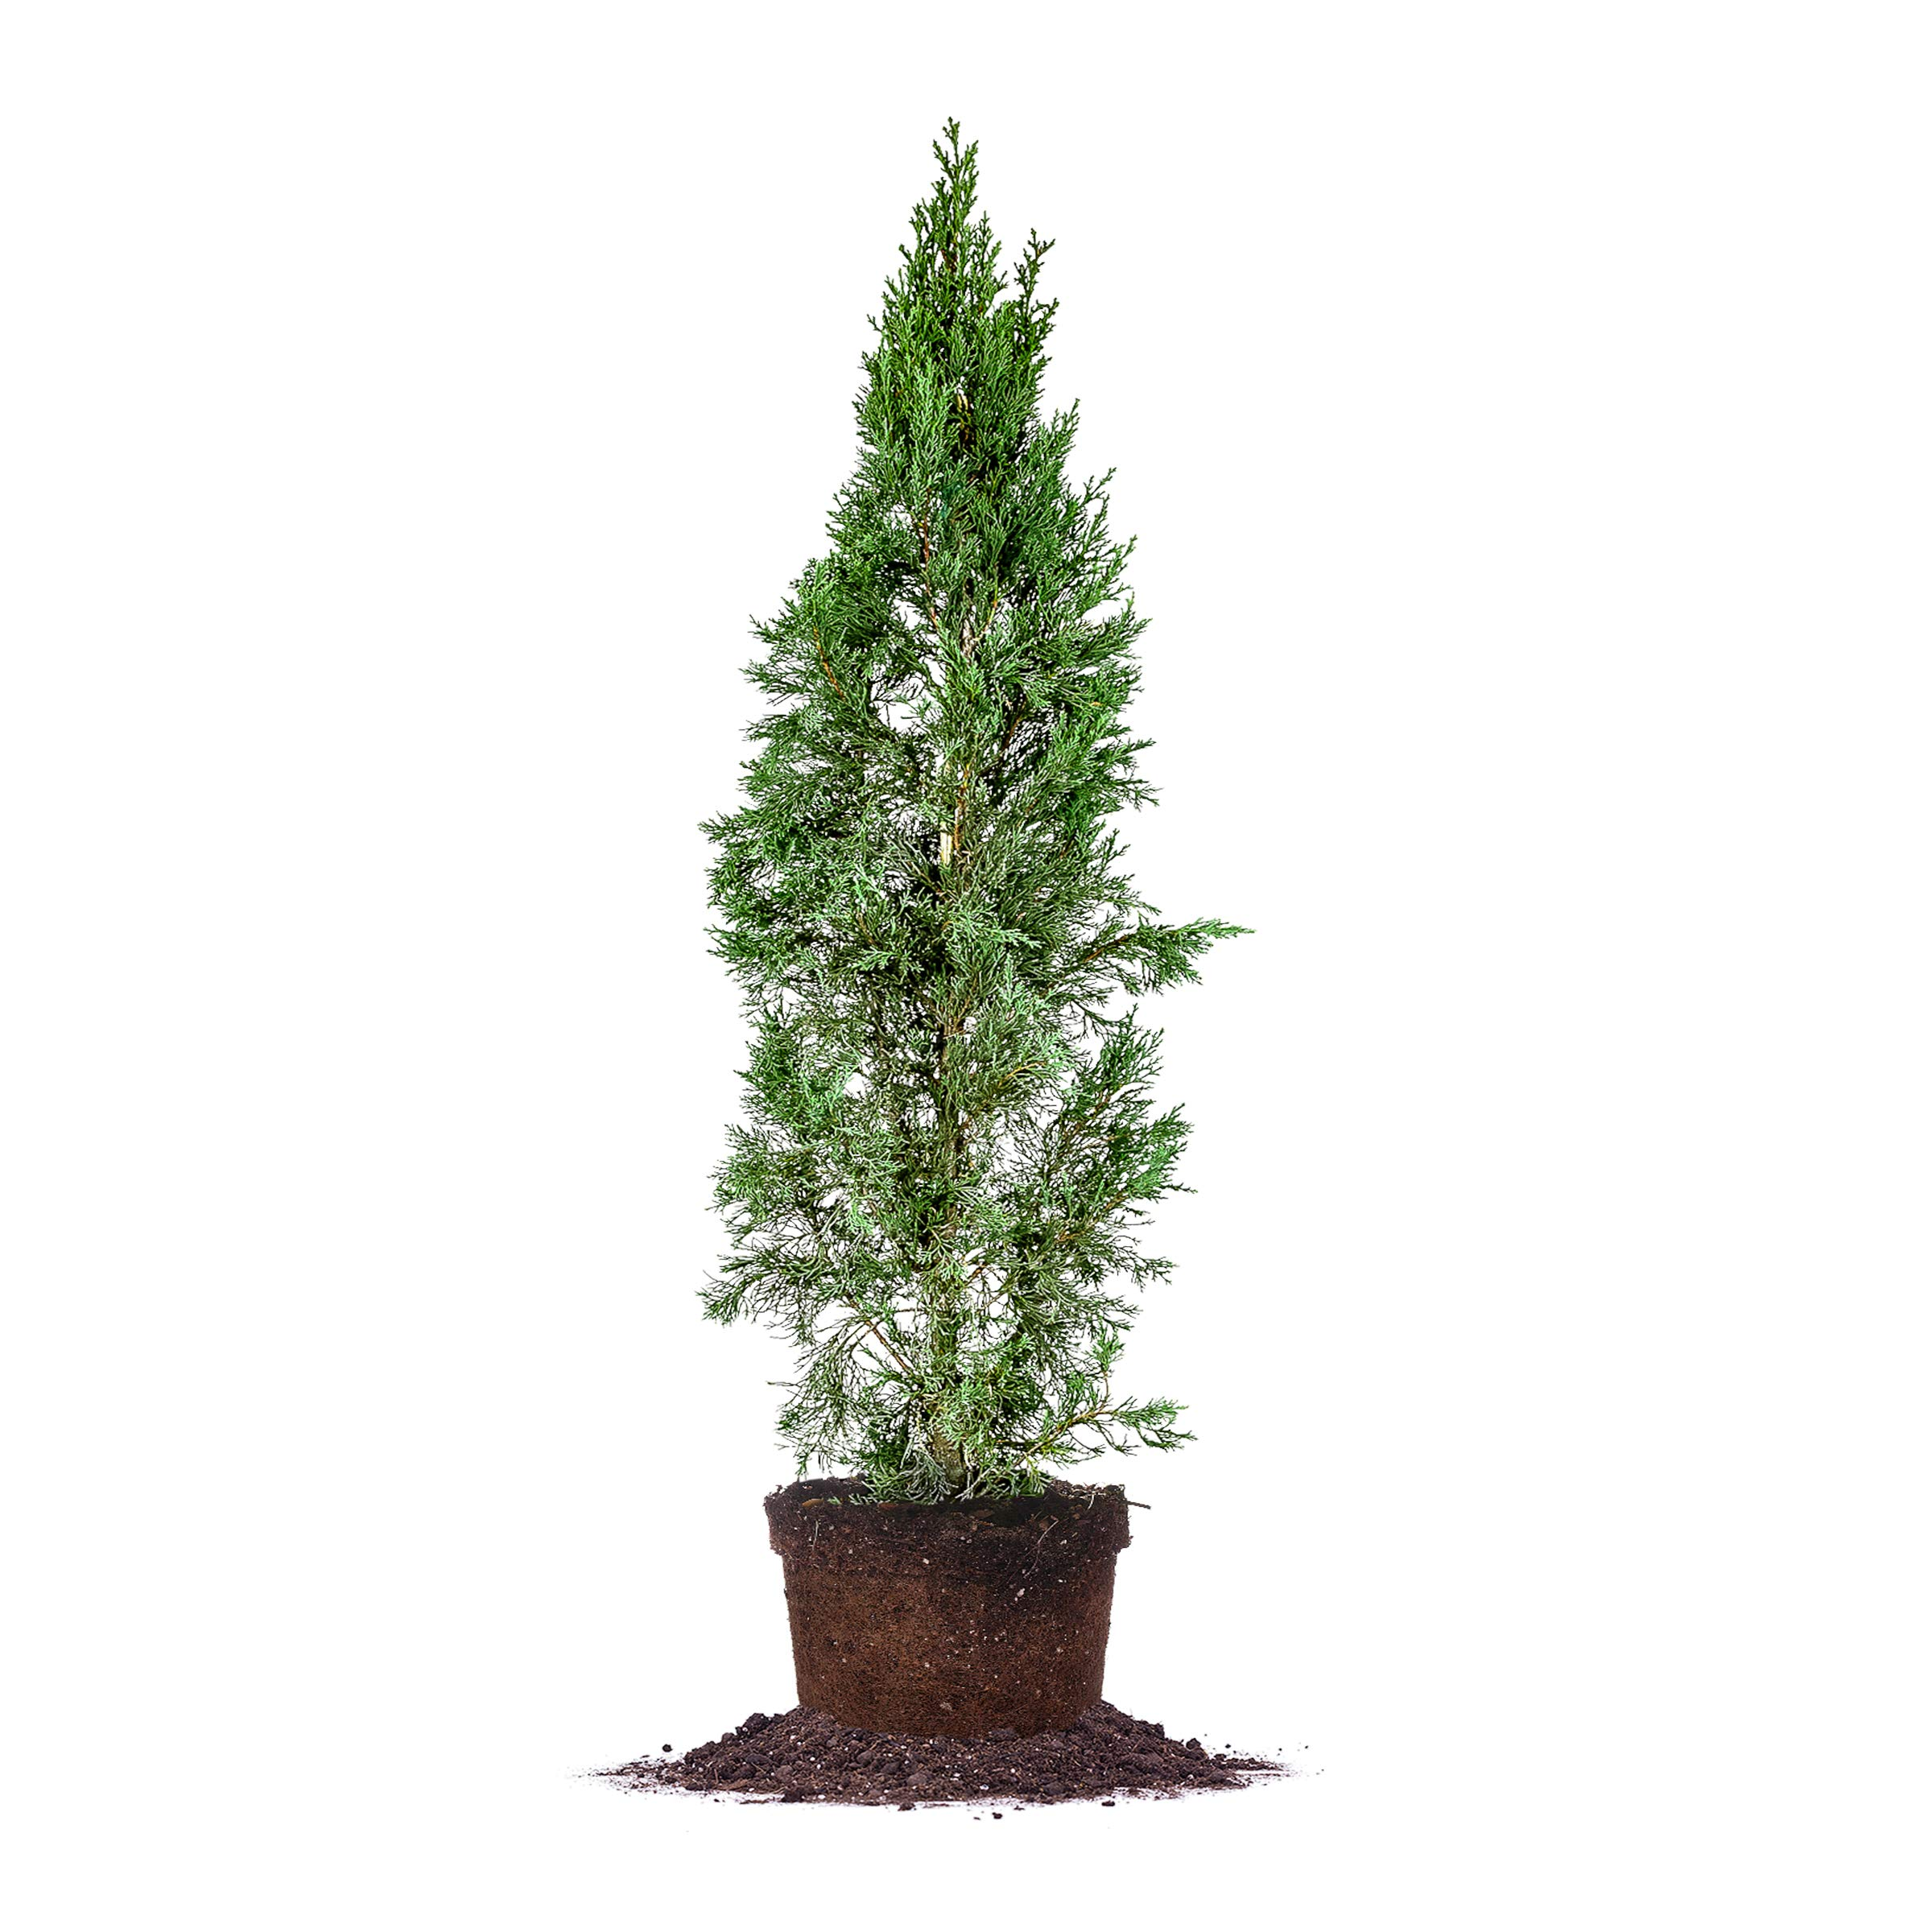 Perfect Plants Italian Cypress Live Plant, 4-5', Includes Care Guide